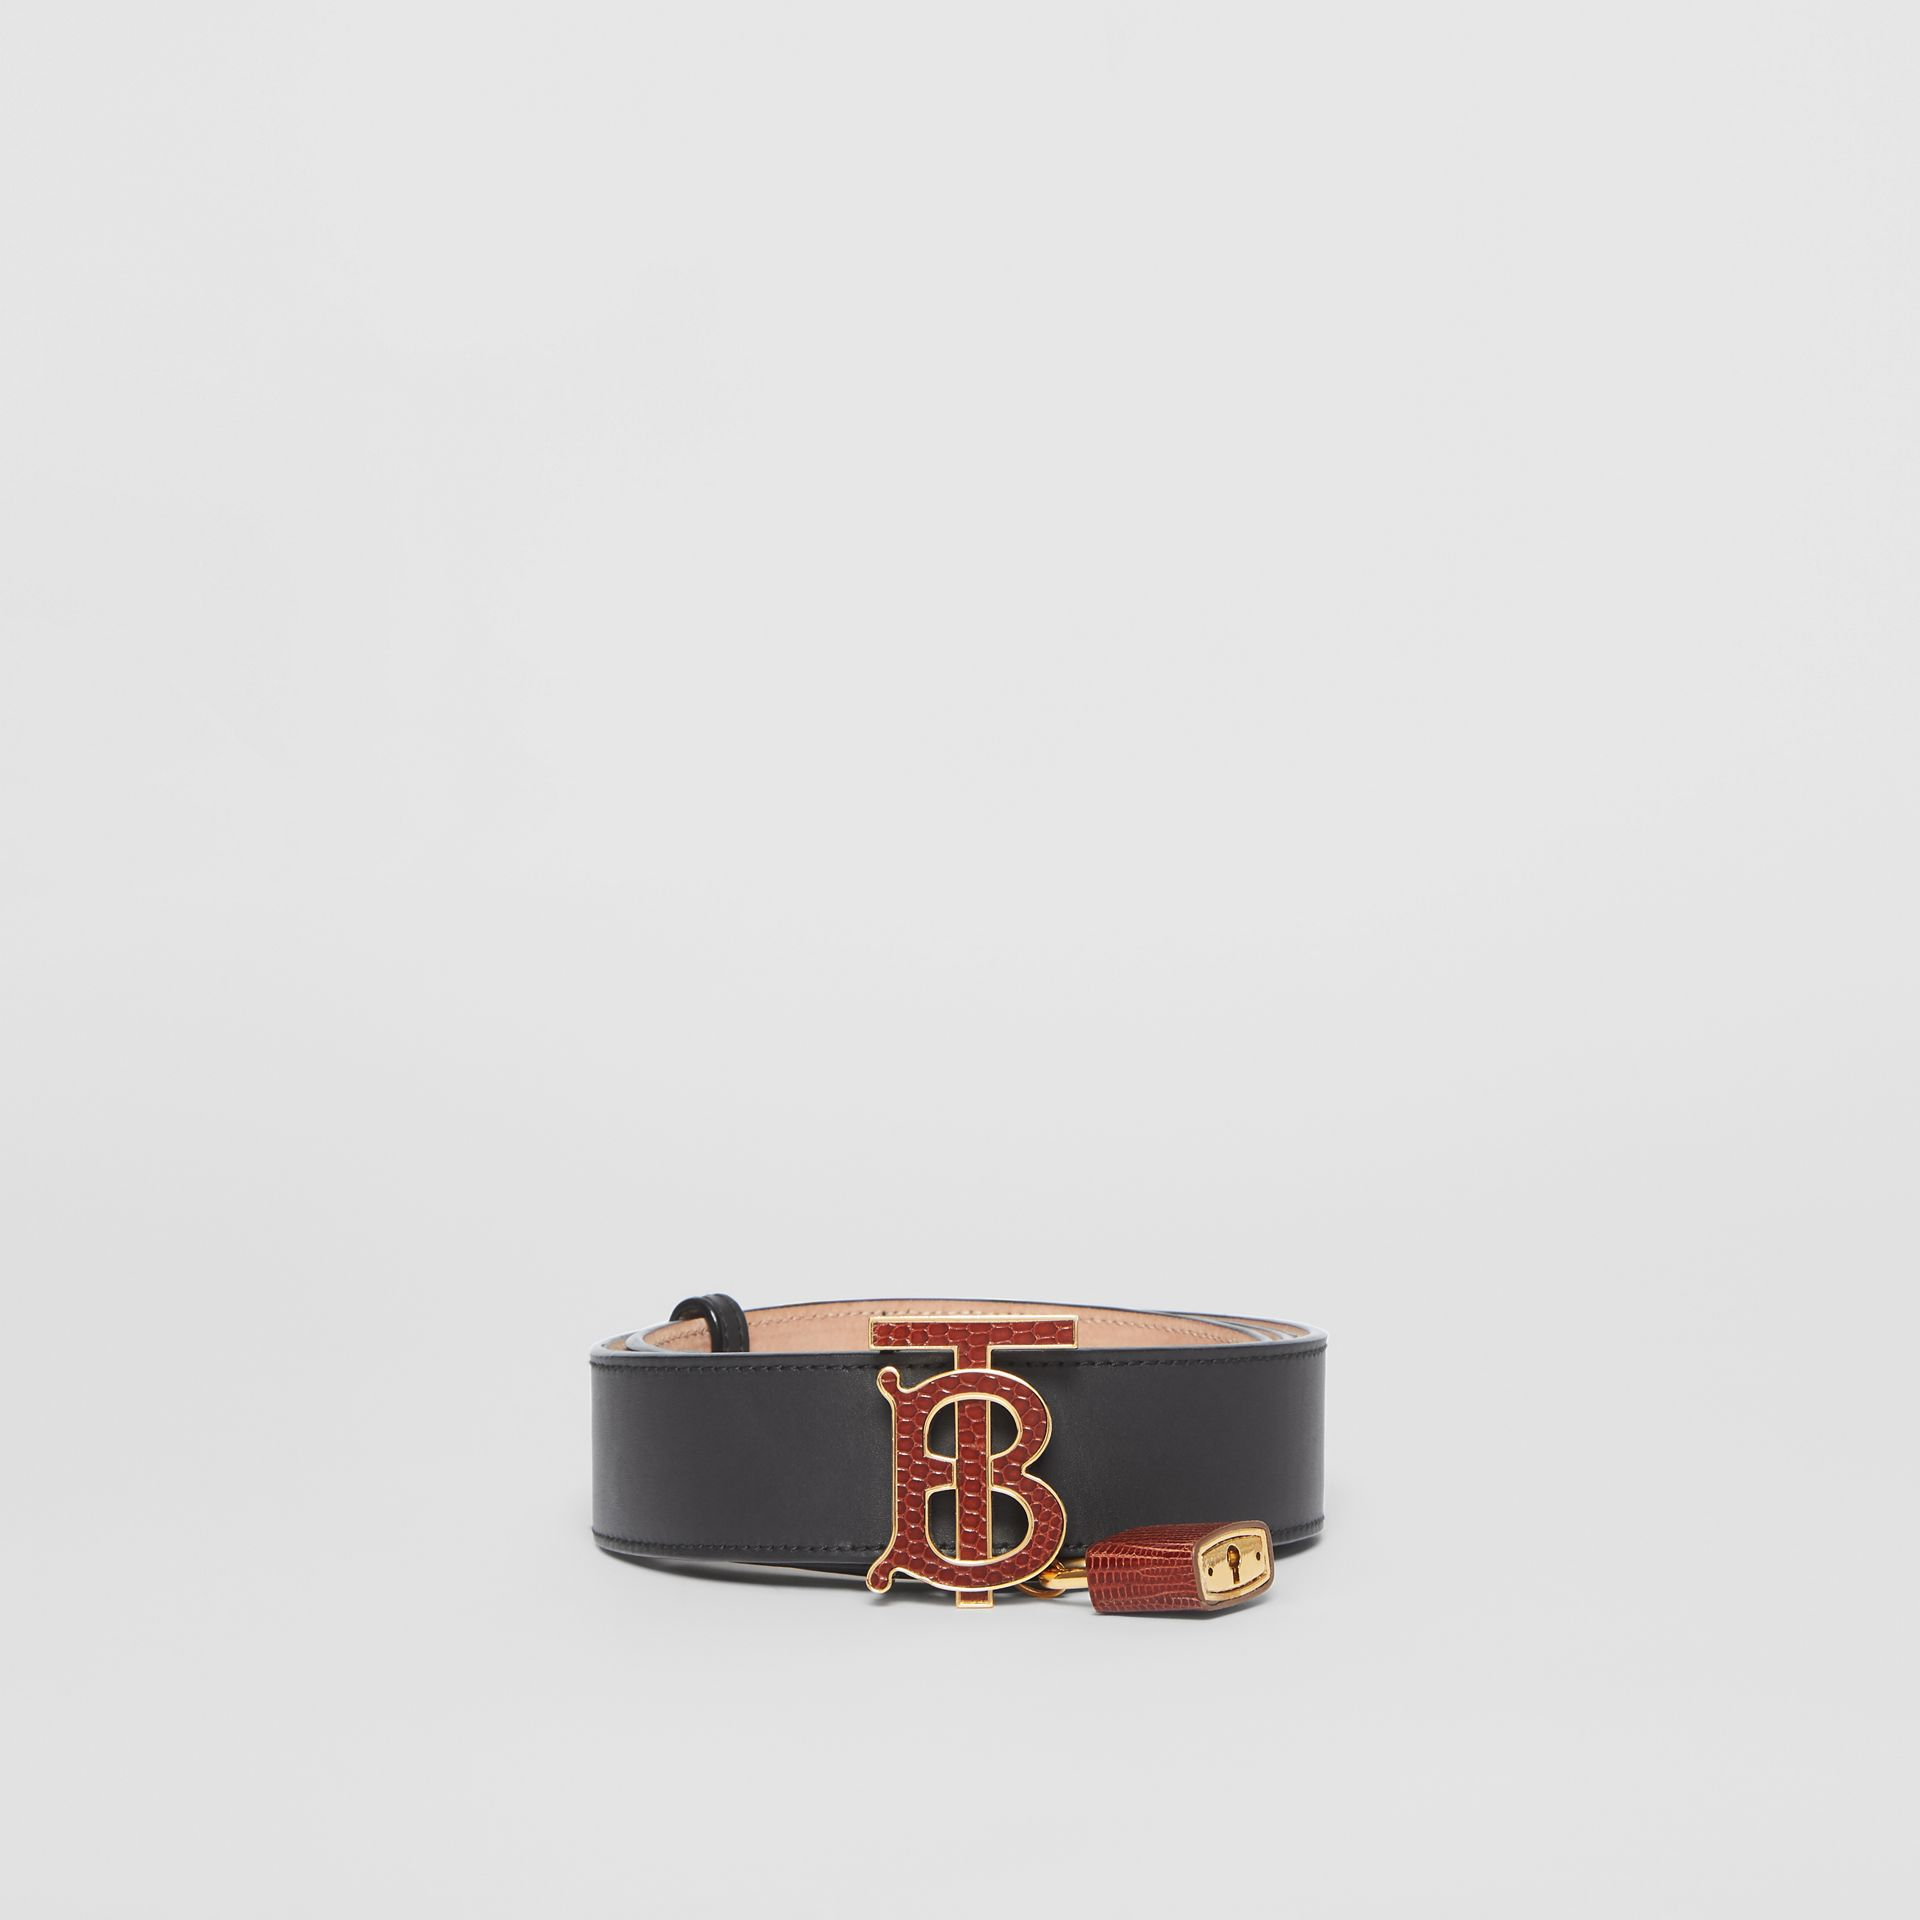 Padlock Detail Monogram Motif Leather Belt in Black/tan - Women | Burberry Australia - gallery image 3